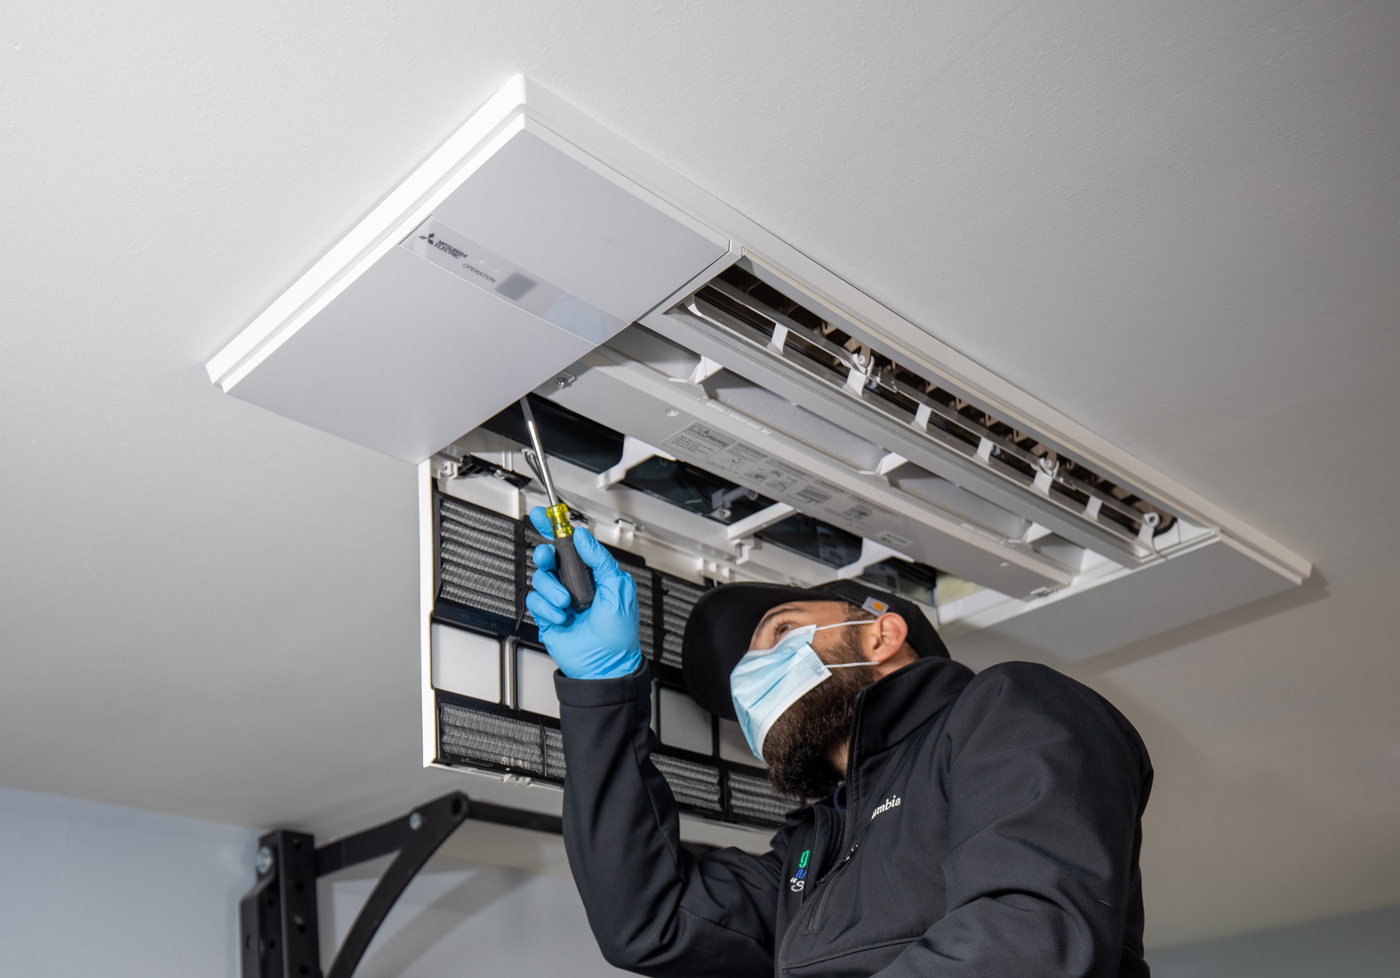 technician installing mini split air conditioning unit in residential garage